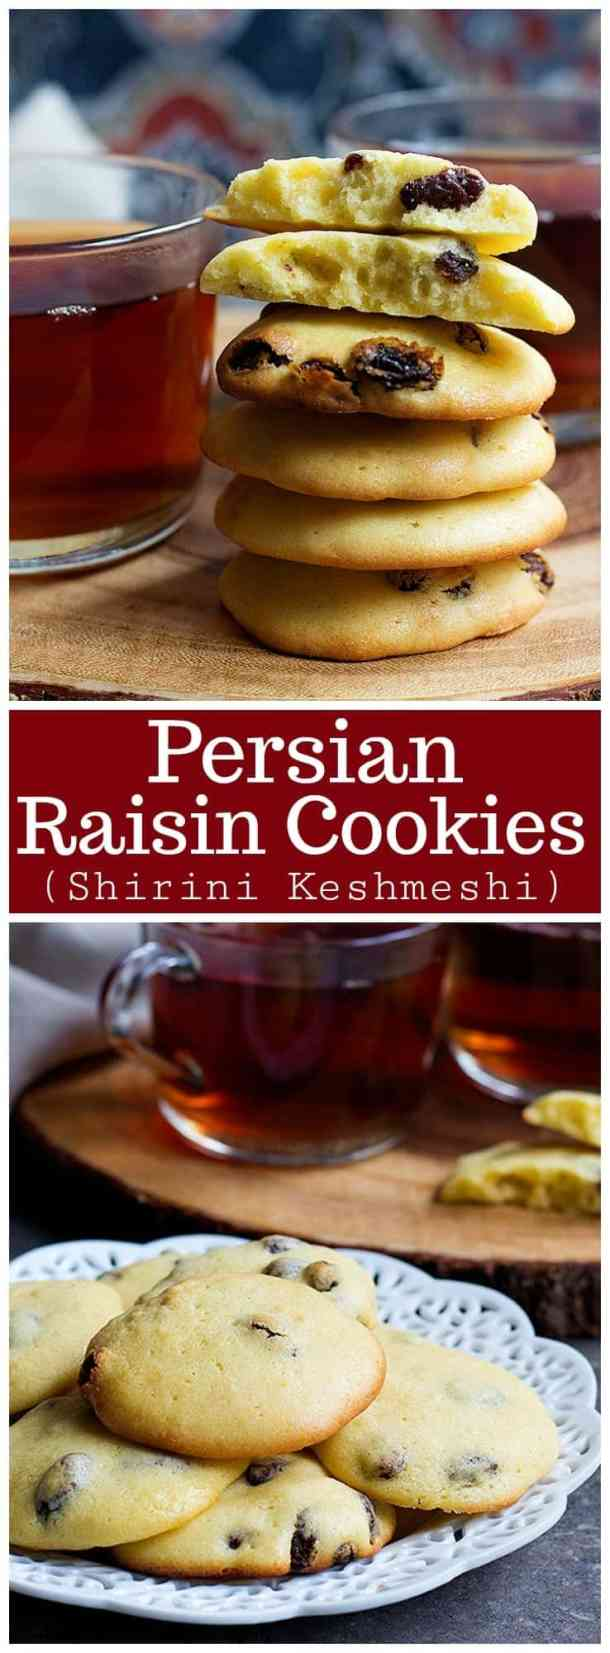 Raisin Cookies | Raisin Cookies Recipe | Persian Raisin Cookies | Persian Recipes |  Nowruz Recipes | Easy Cookies | Easy Cookie Recipe | Delicious Cookies | Cookie Recipe | Middle Eastern Desserts | Iranian Recipes | Mediterranean Recipes | unicornsinthekitchen.com